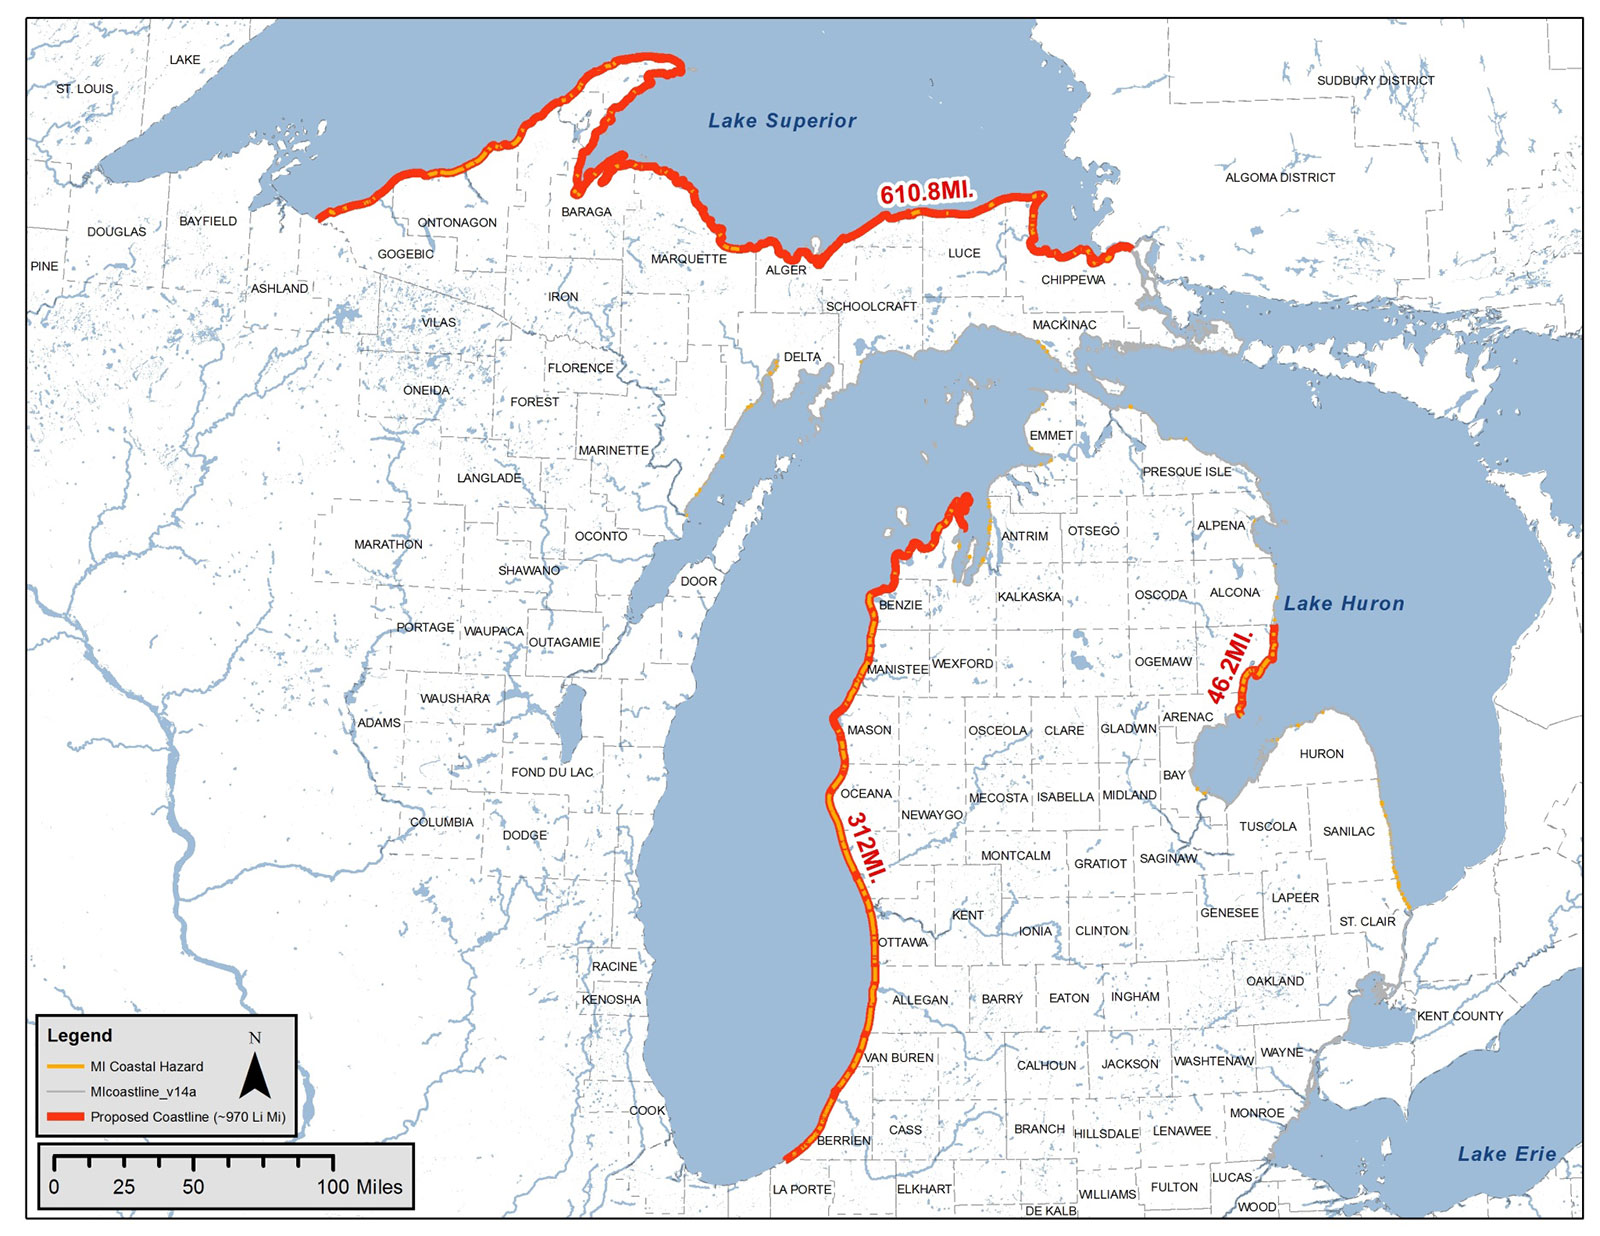 Michigan Coastal Mapping and Risk Assessment | AES